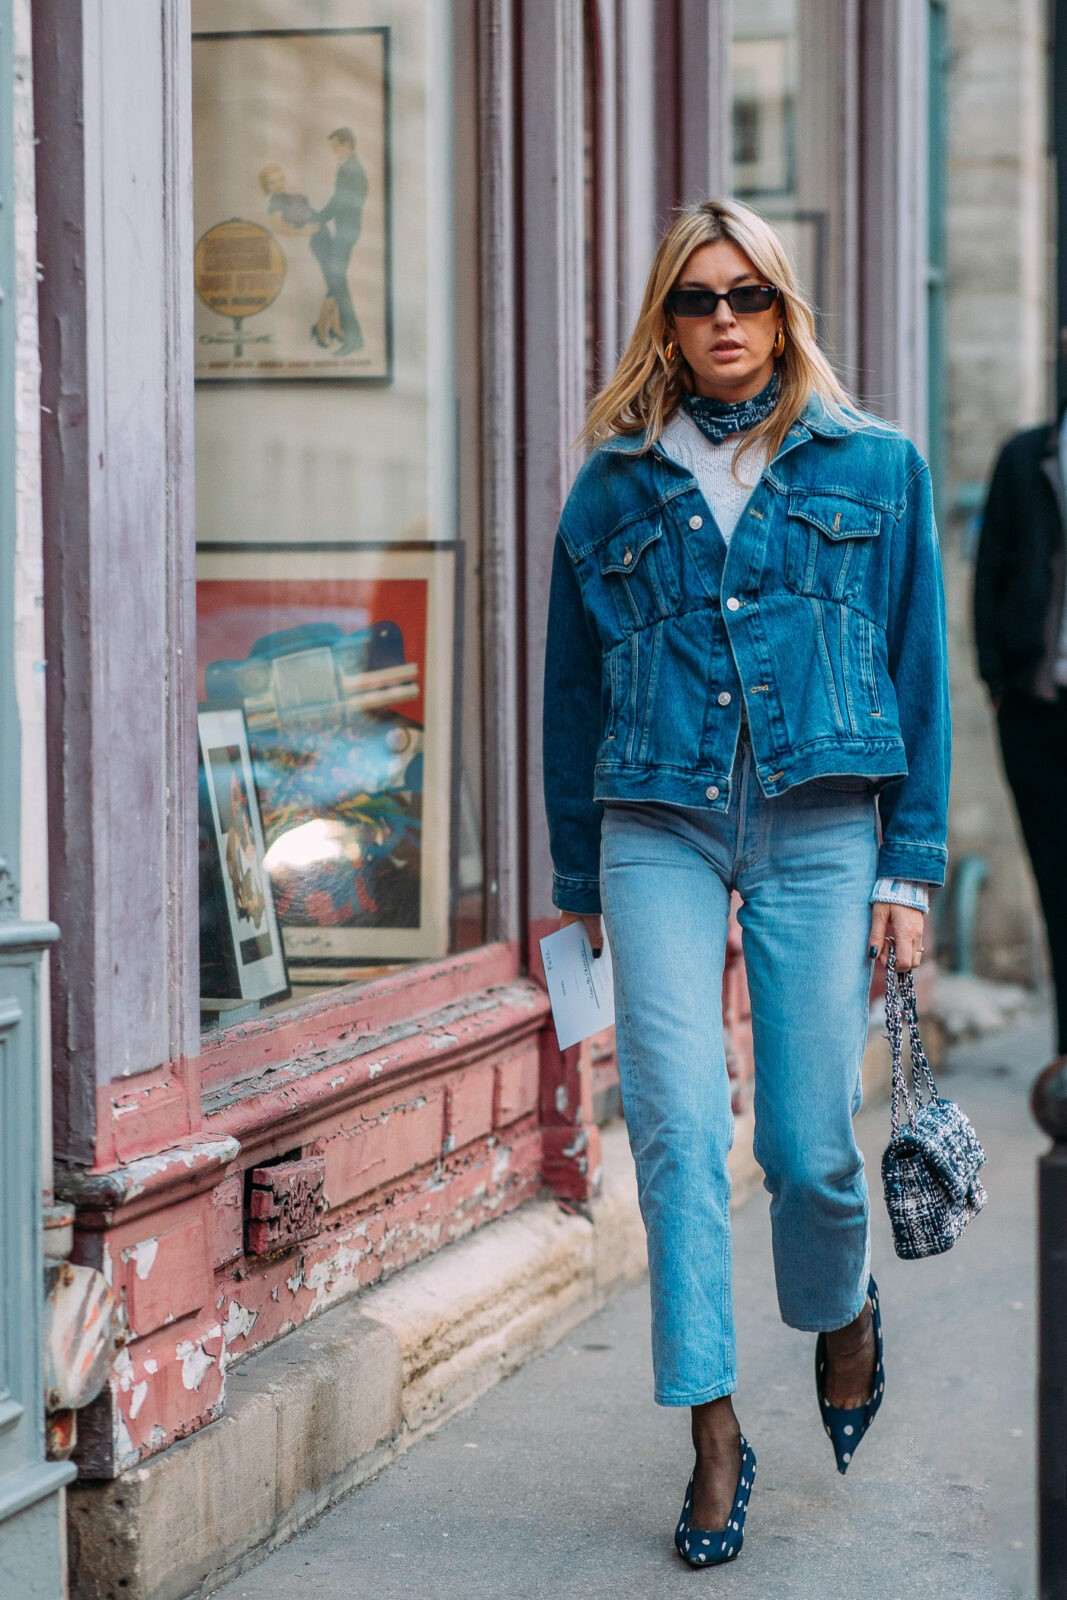 Camille Charriere denim jackets stylebook edit seven